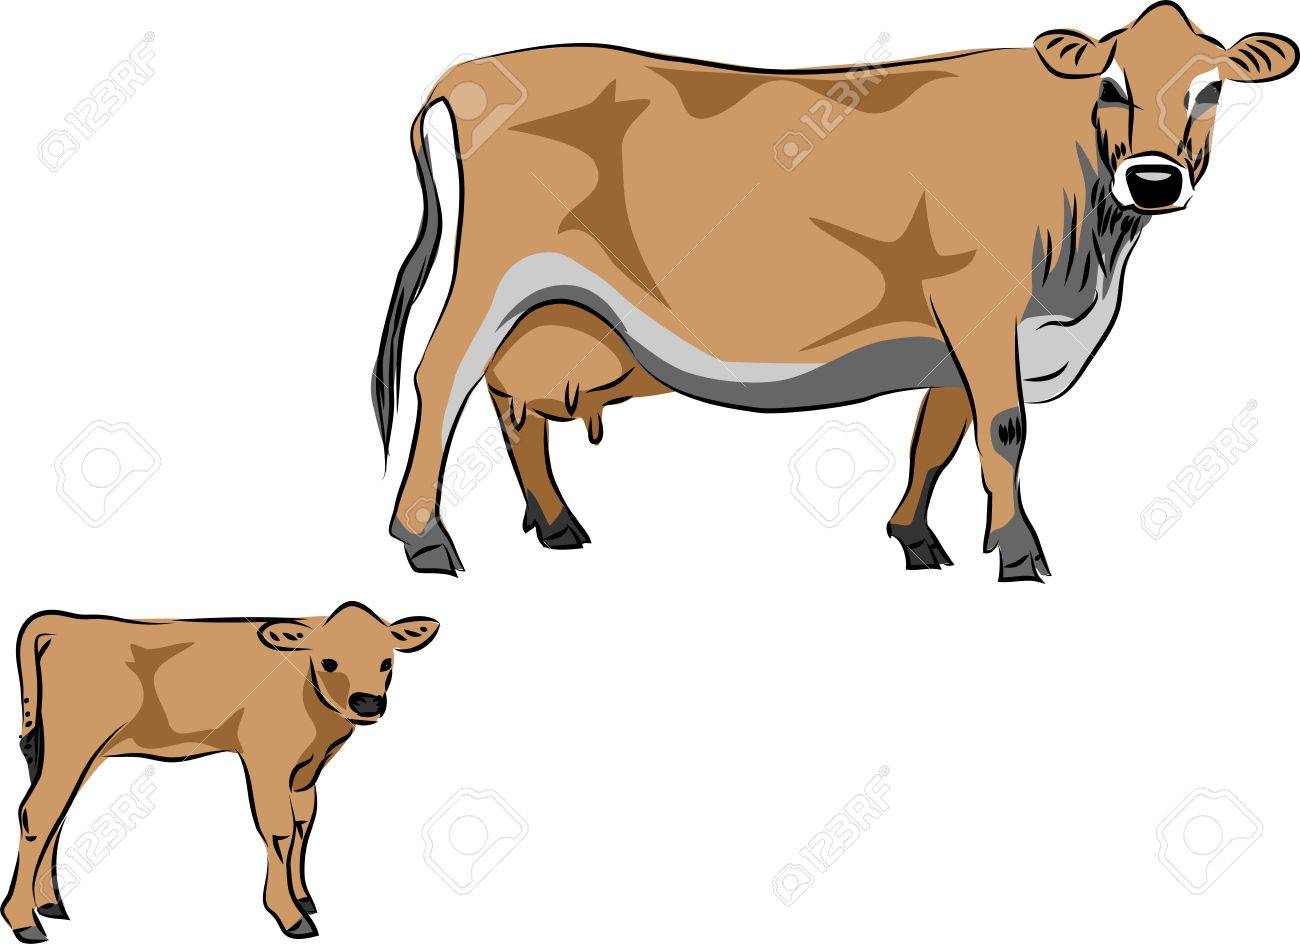 Jersey cow with calf vector illustration.